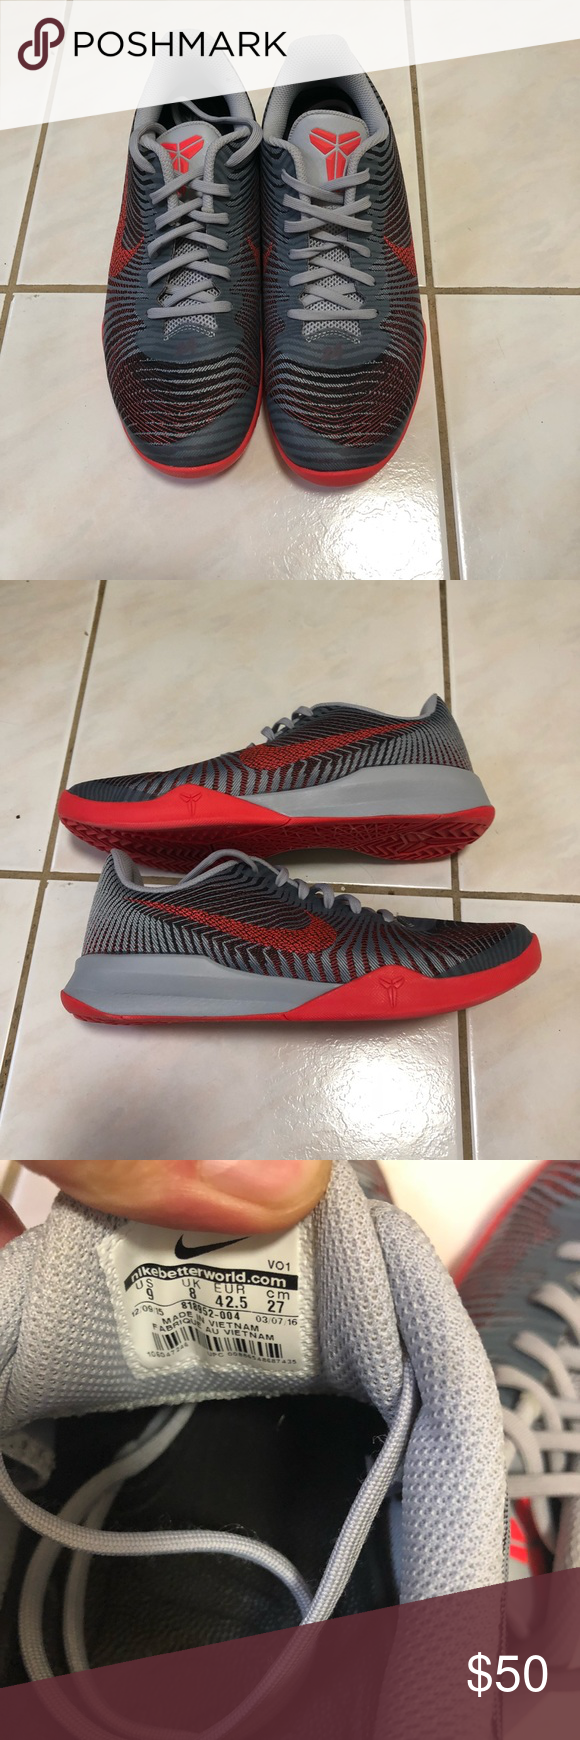 b13a1840298 Brand New Nike Kobe Mentality 2 basketball shoes Gray with hints of  infrared Kobe mentality 2 Shoes. Good affordable basketball sneaker.